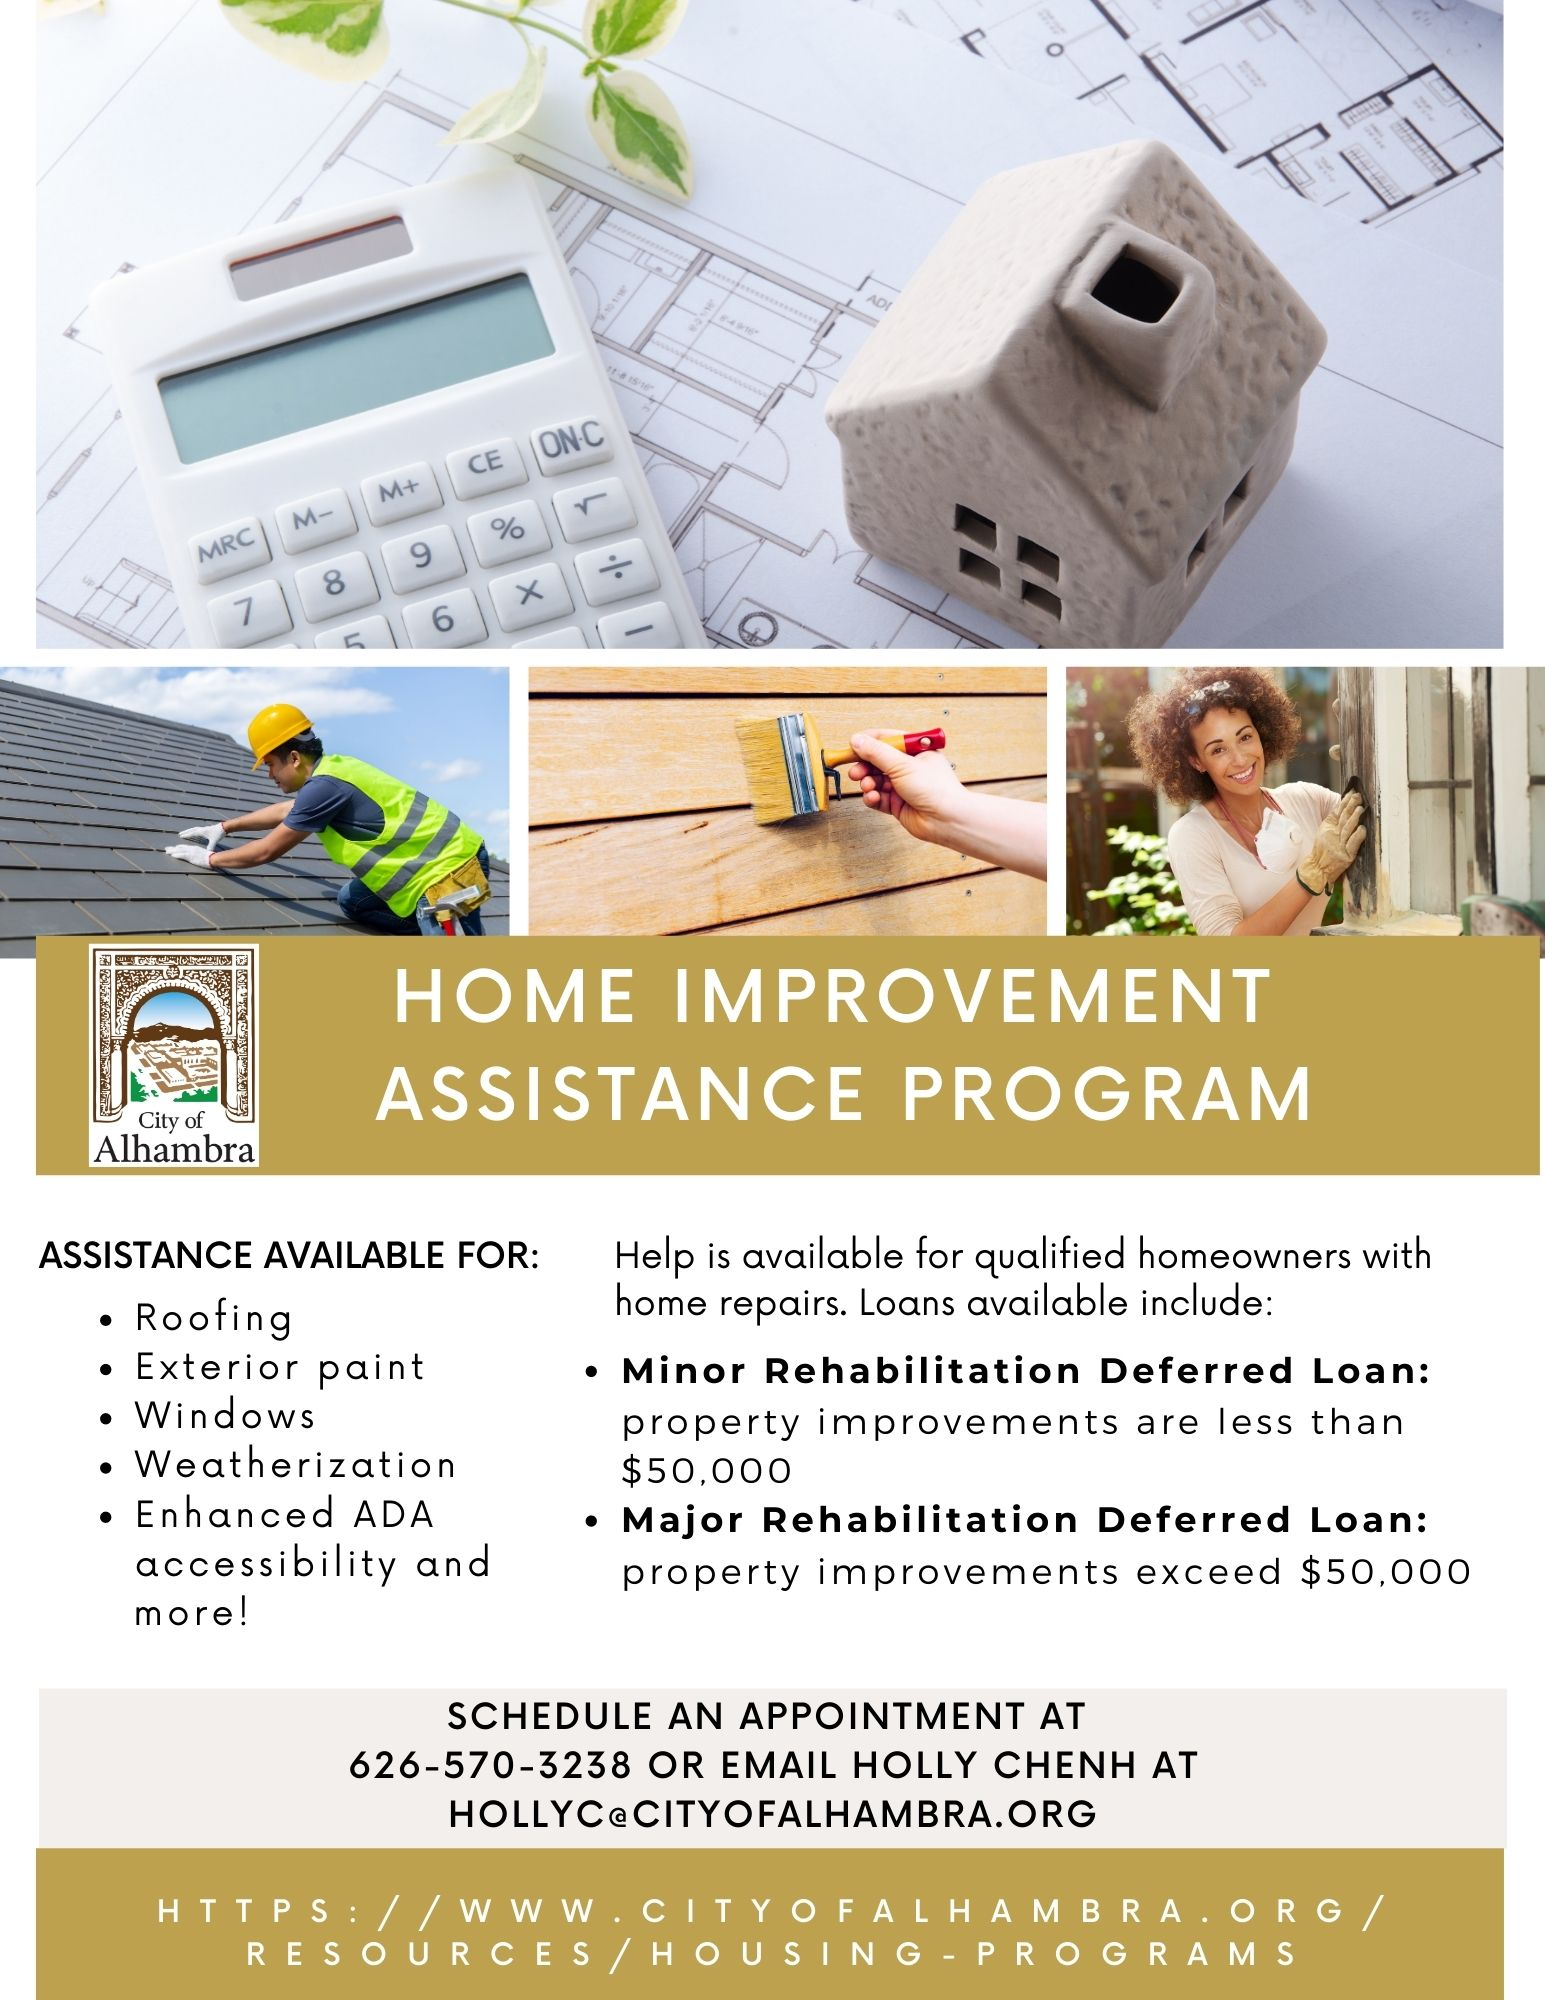 home improvement assistance program in english